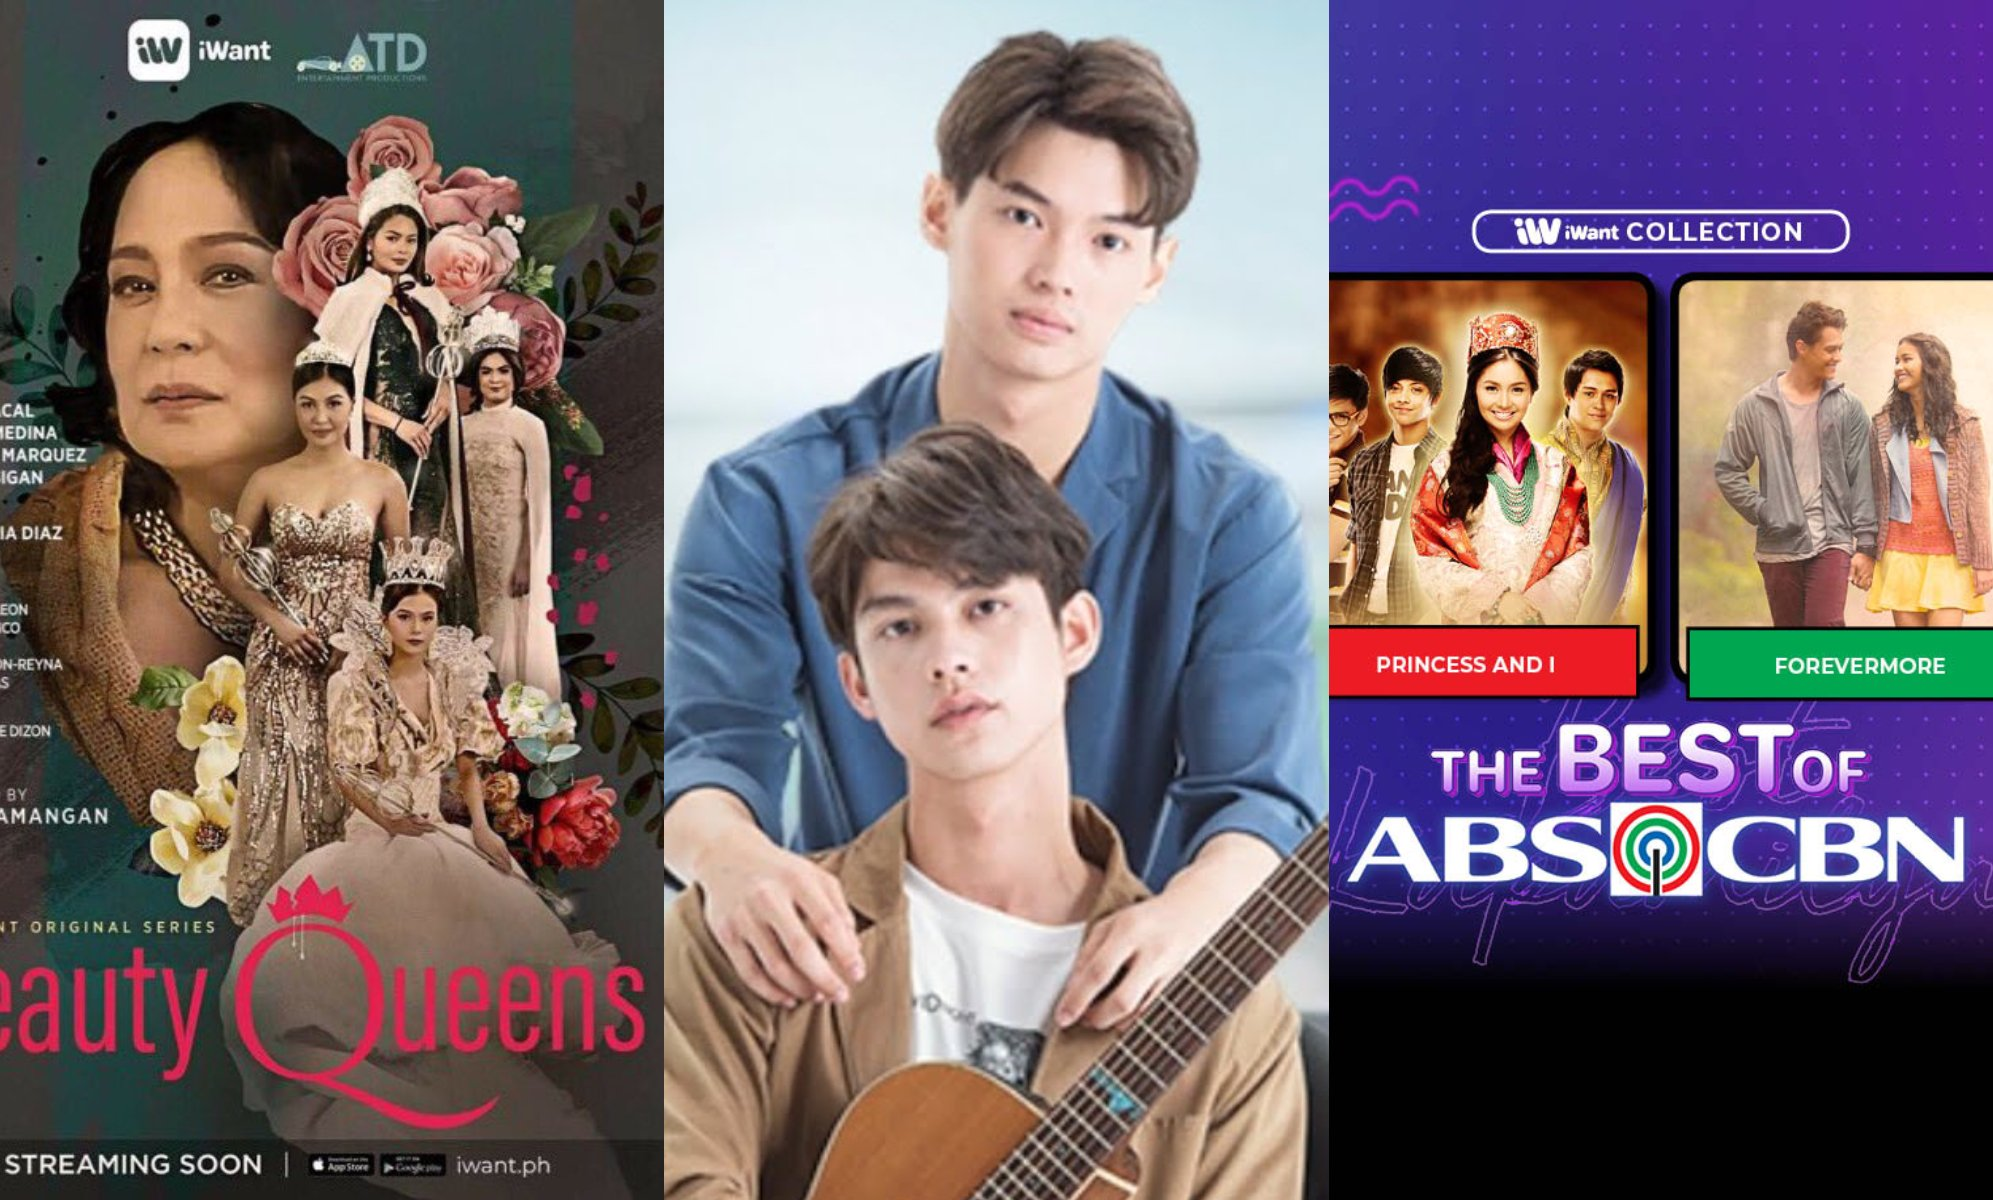 iWant unveils 'Beauty Queens,' '2gether' and more Kapamilya gems